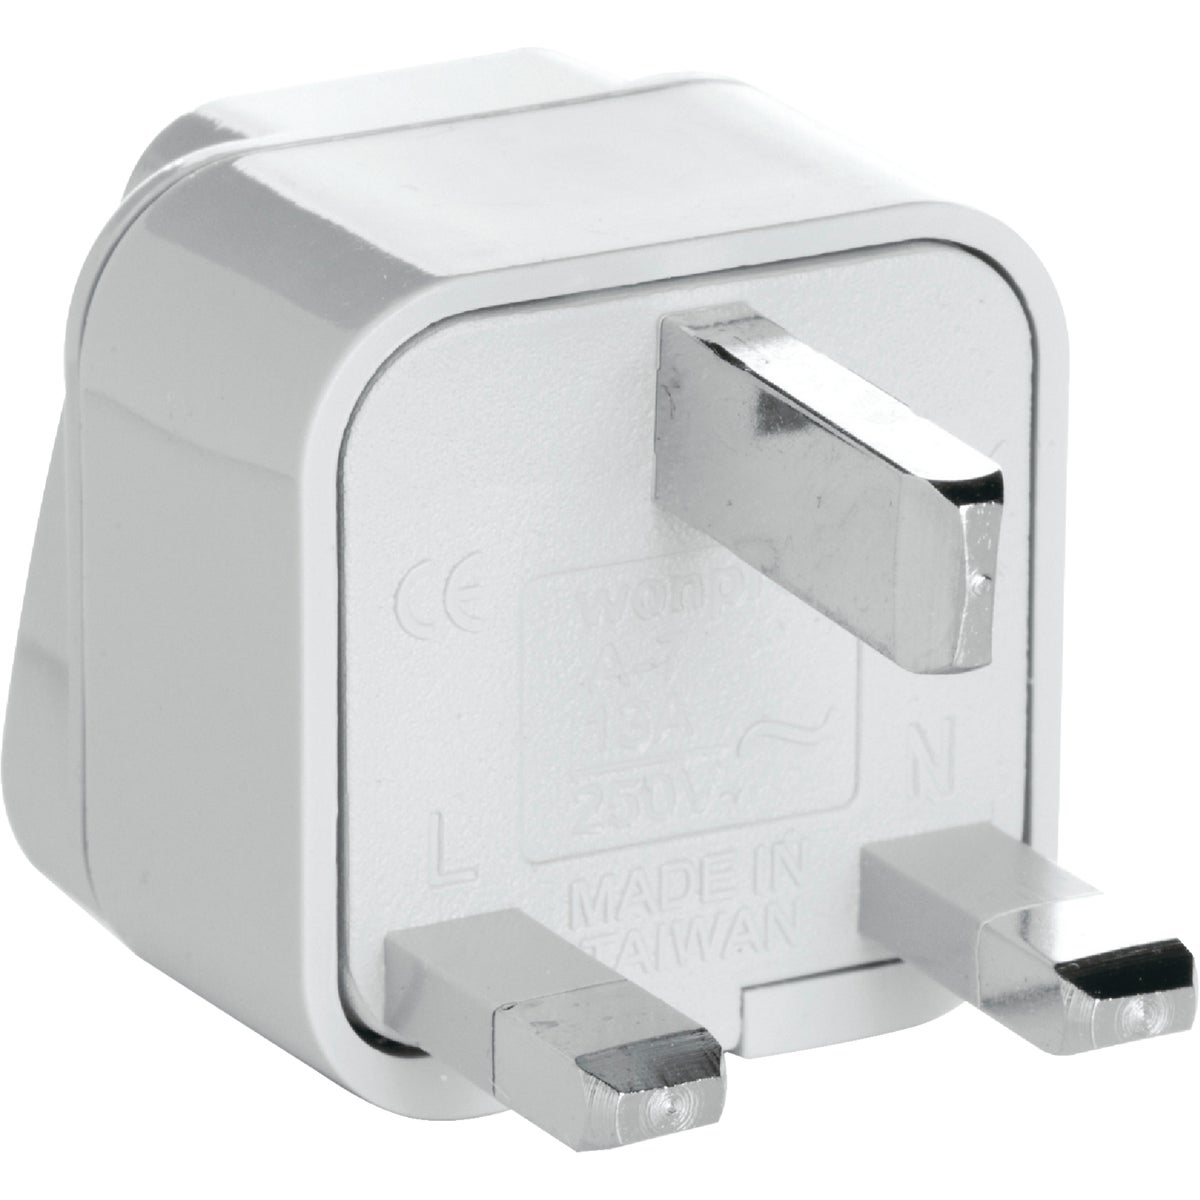 FOREIGN ADAPTER PLUG - NW-135C by Franzus Company Inc